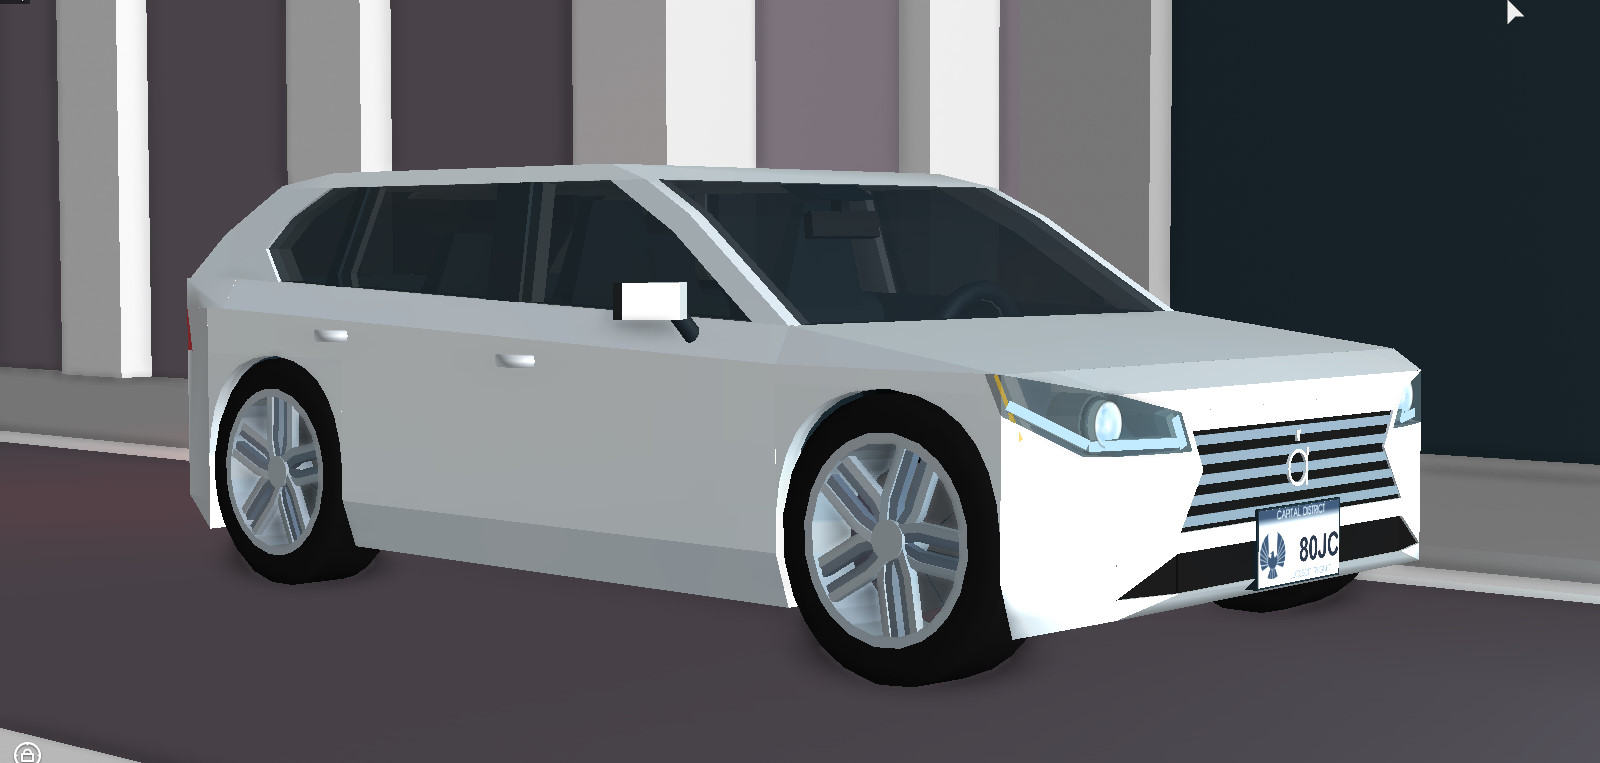 Auva orion | Roblox vehicles Wiki | FANDOM powered by Wikia